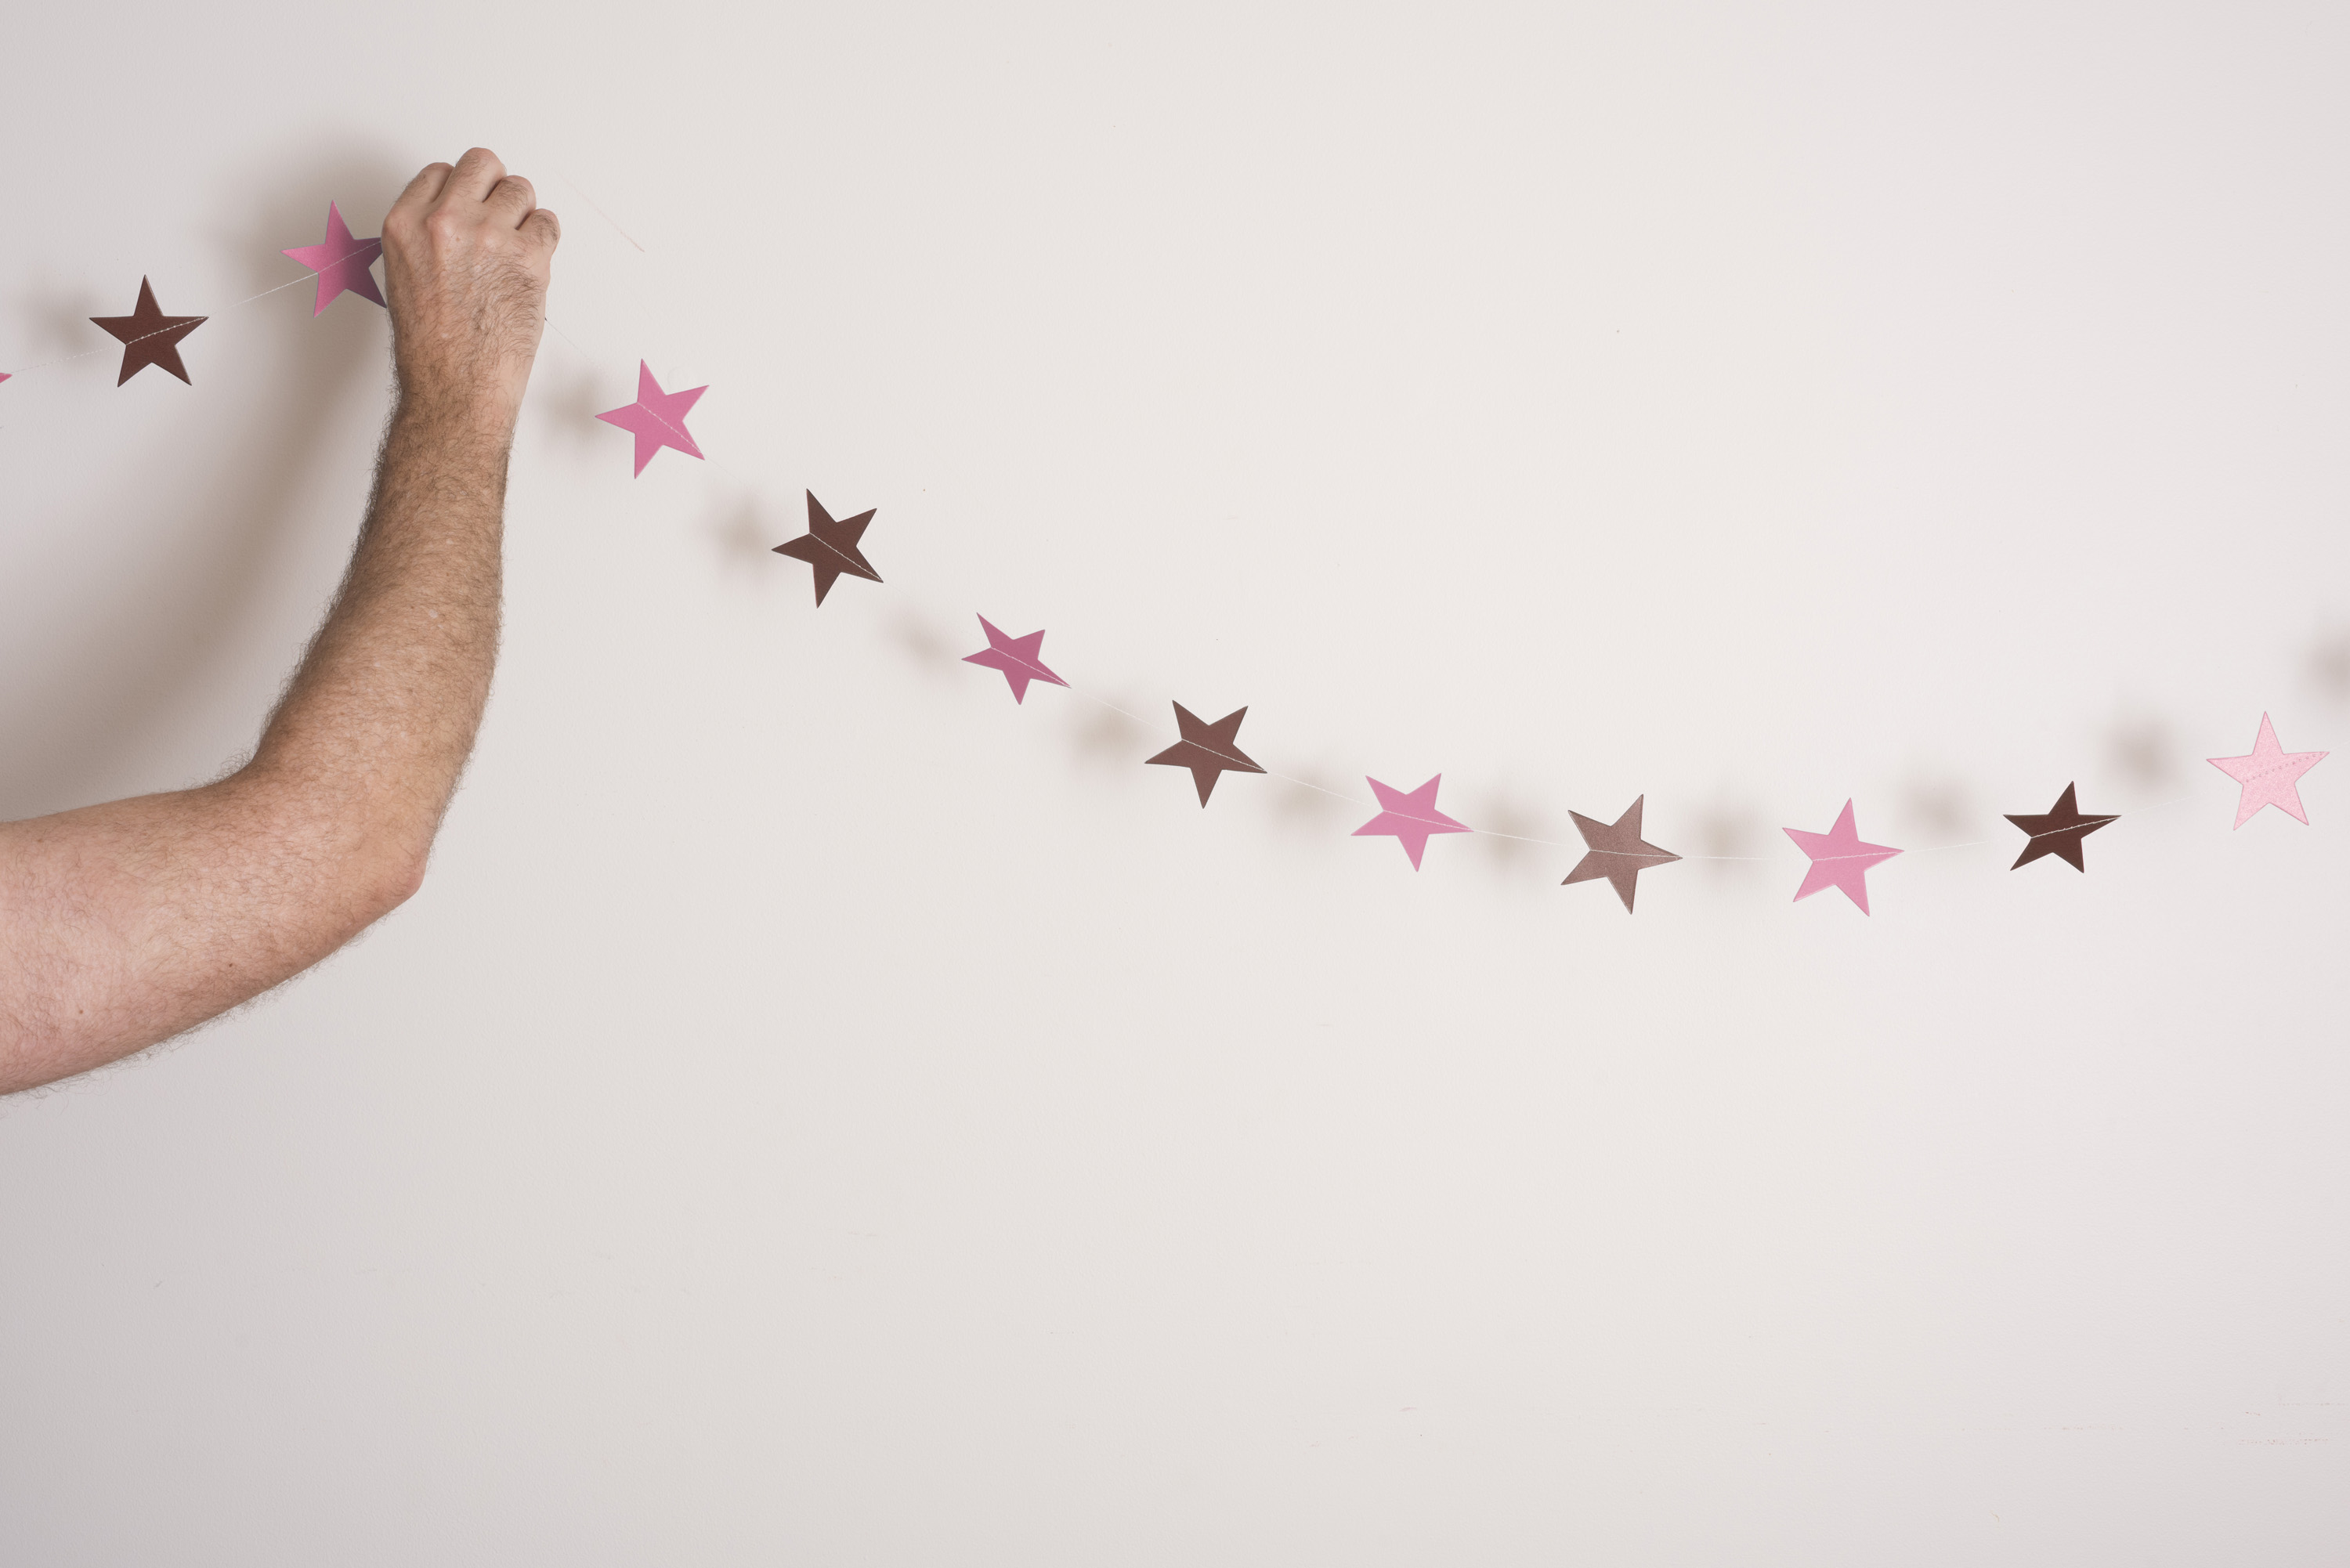 Man hanging a garland of pink and gold Christmas stars or bunting on a white wall with copy space, close up of his arm to the side